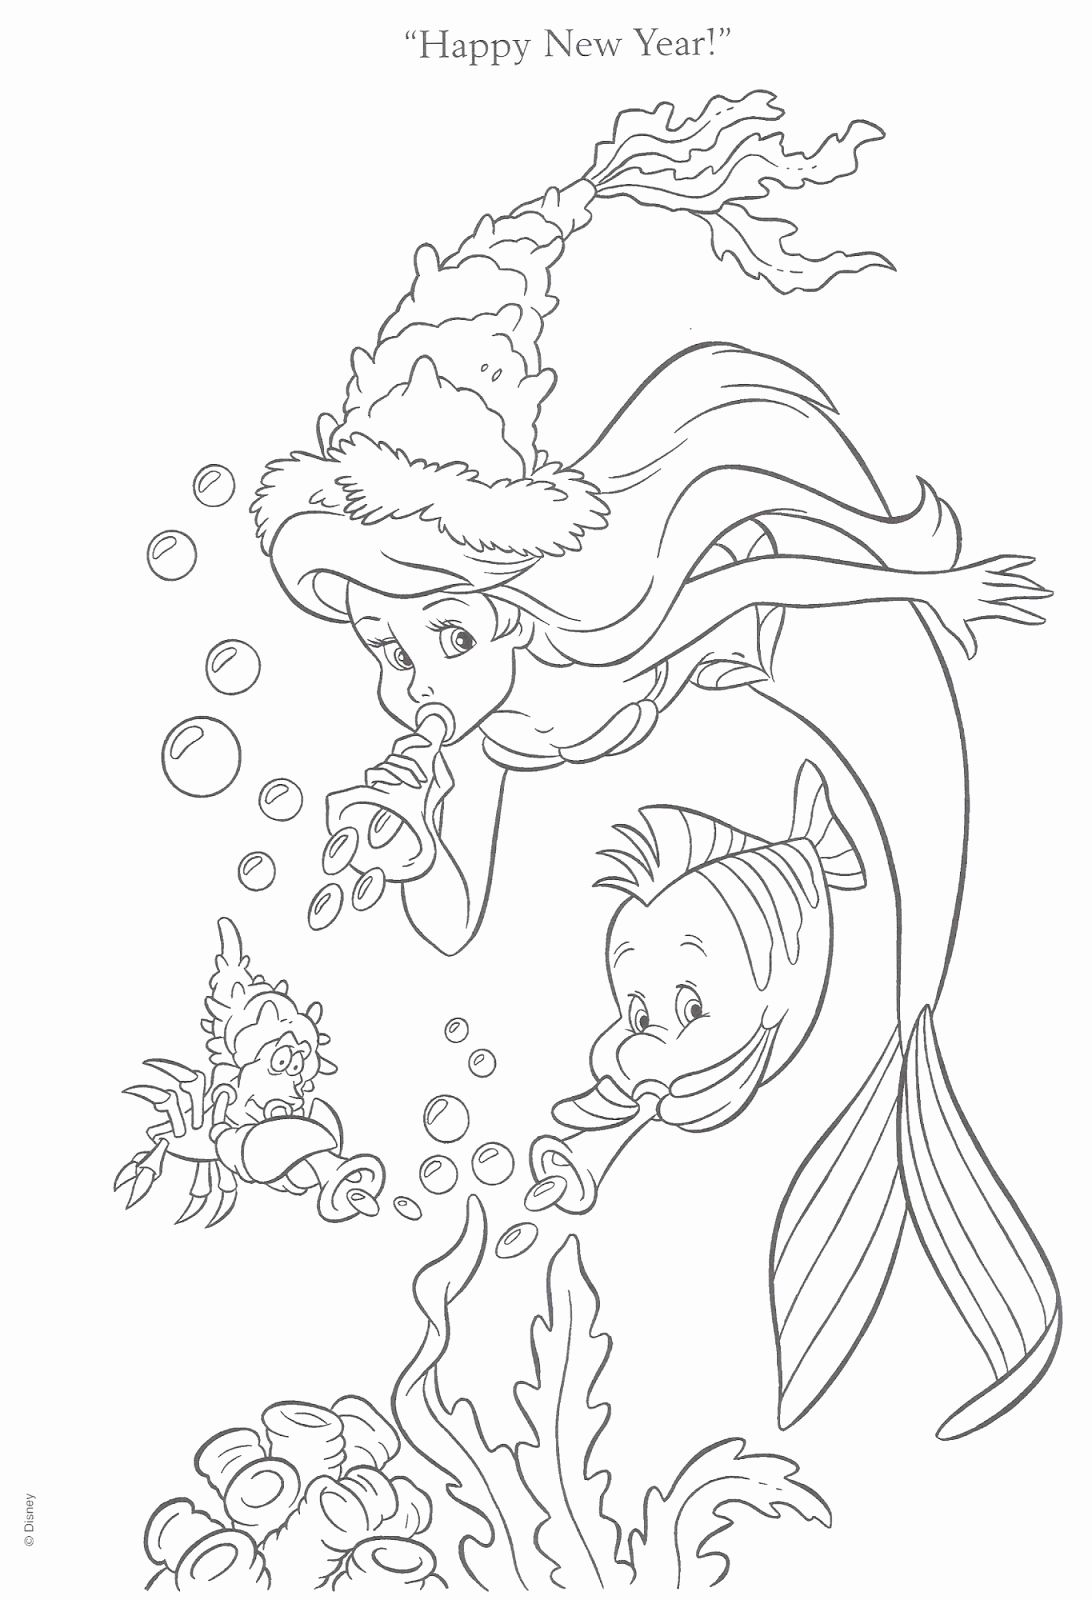 H20 Just Add Water Coloring Pages Fresh Stainedglassbutterflies Mermaid Coloring Pages Mermaid Coloring Book Disney Princess Coloring Pages